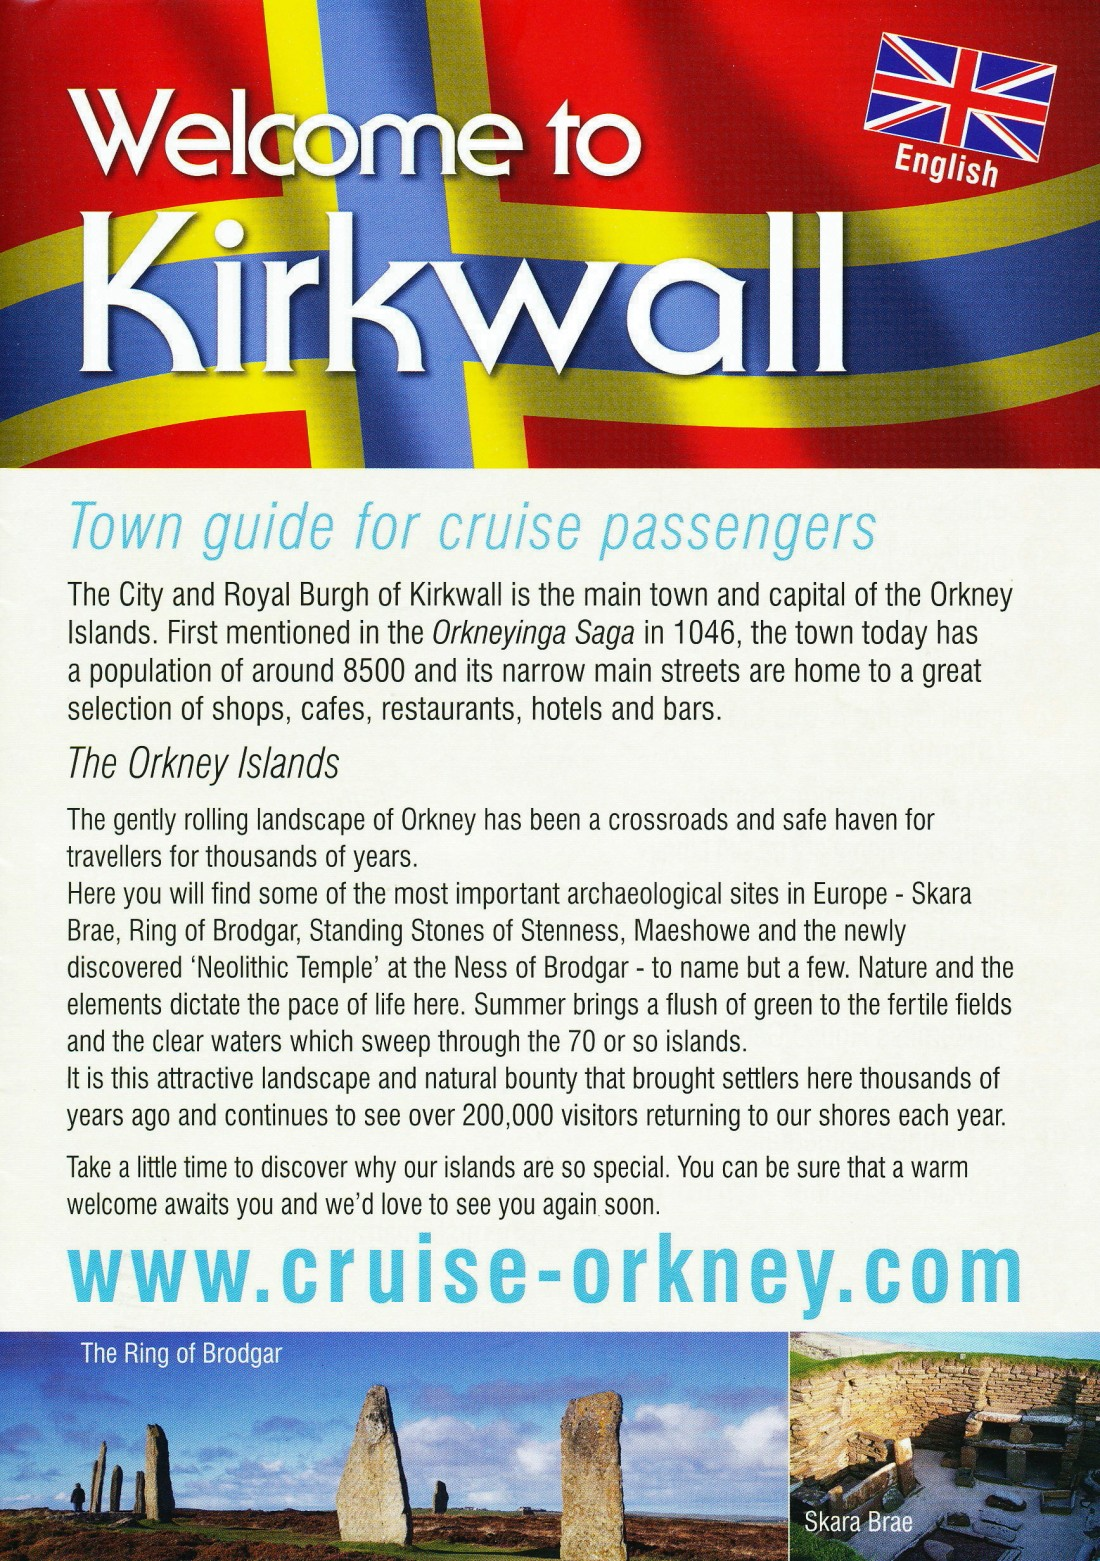 orkney5